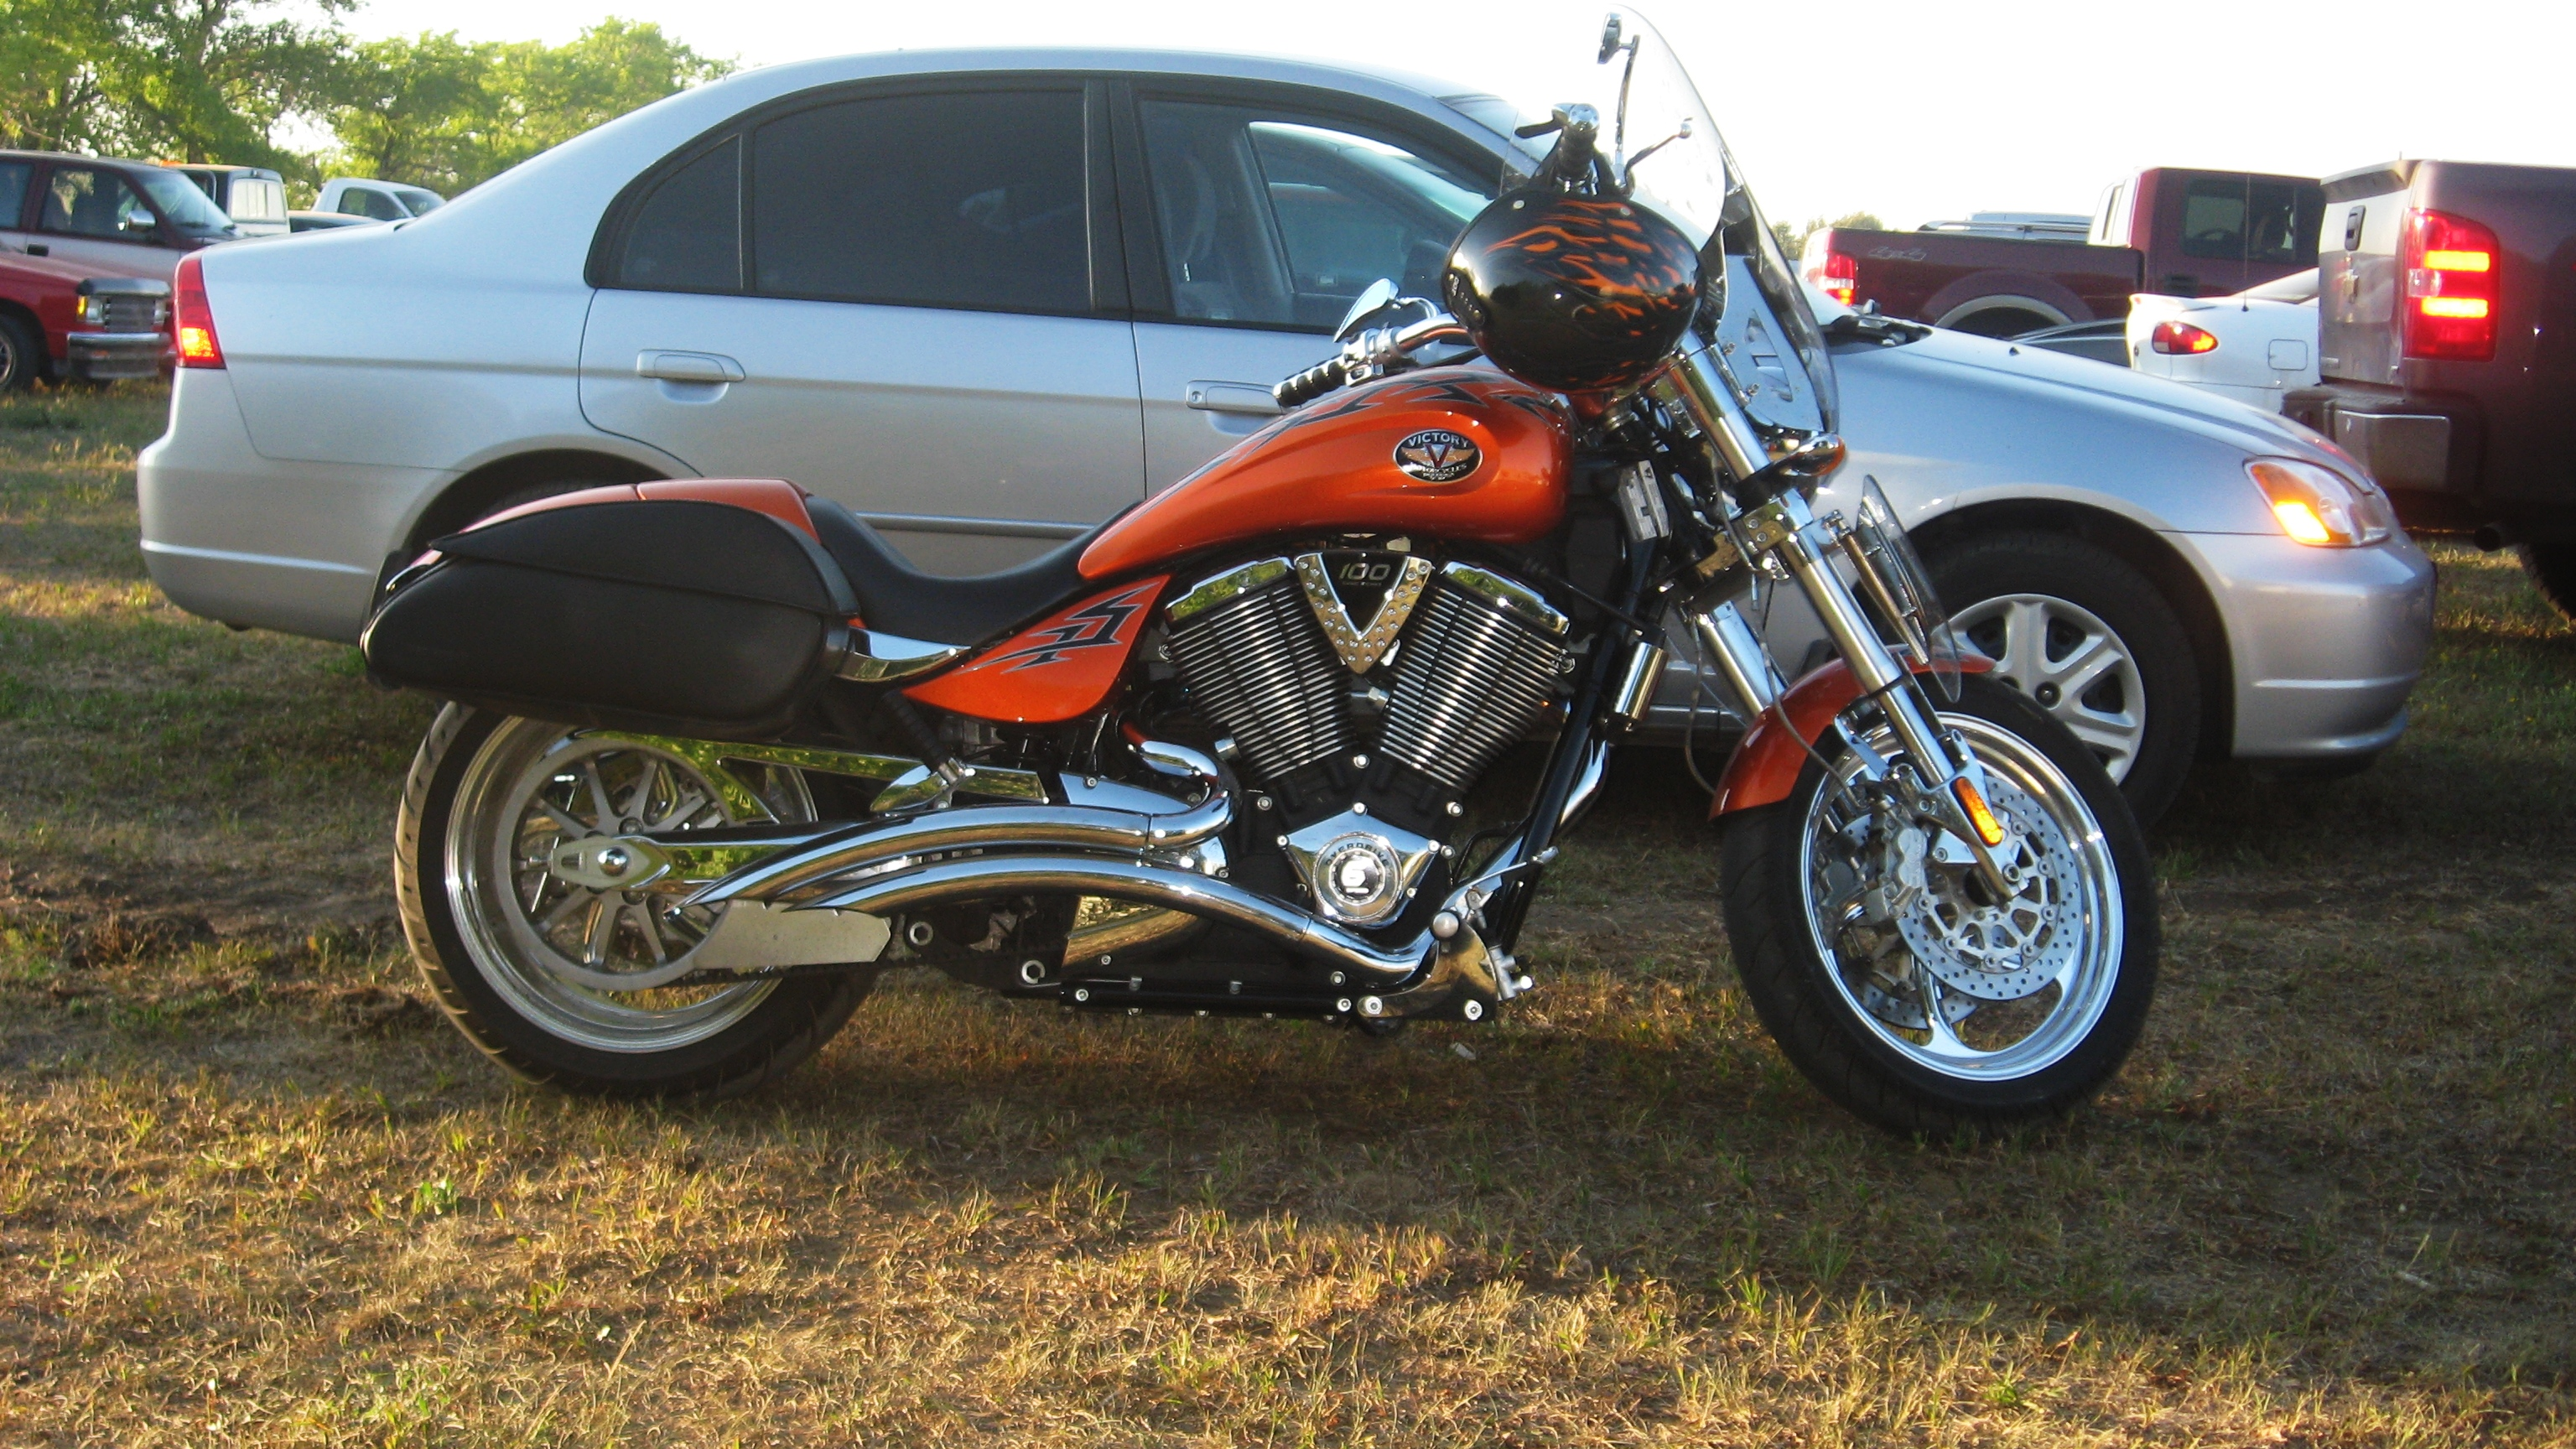 Victory Cruiser Deluxe 1500 2000 images #129419